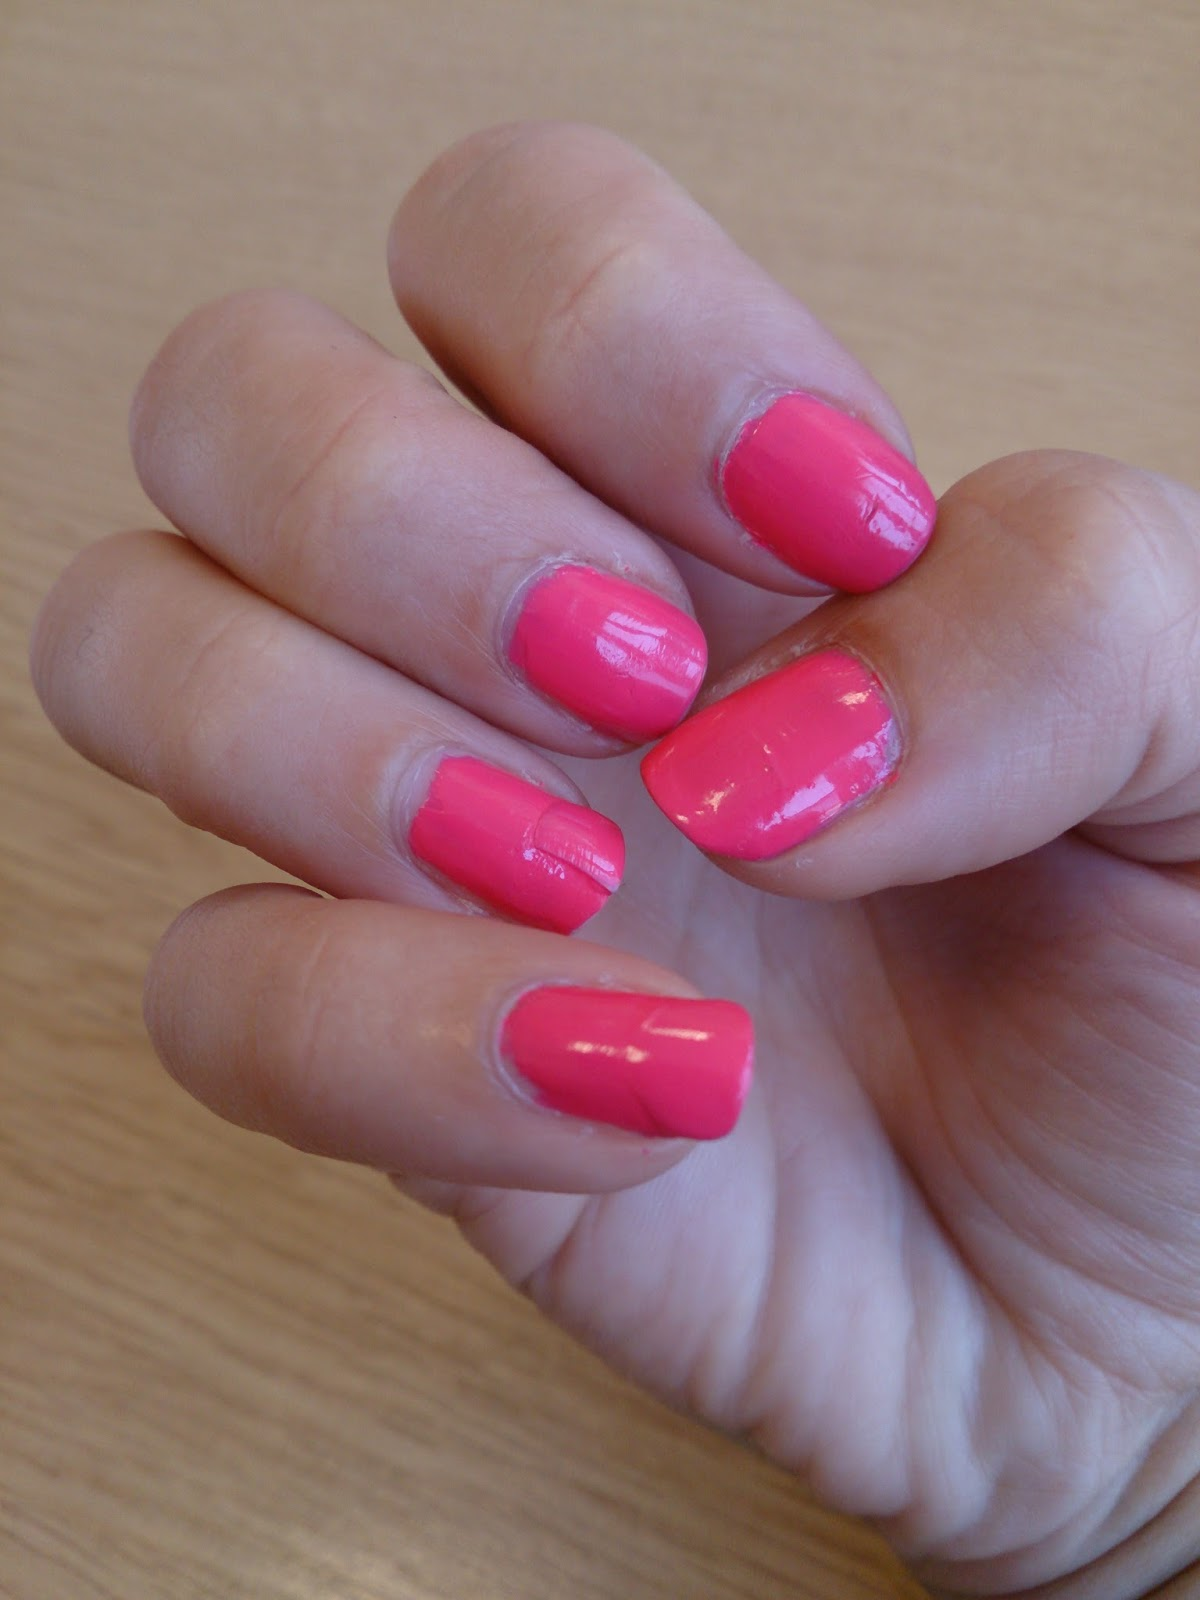 barry m nail effects jelly 8 grapefruit pink neon polish varnish